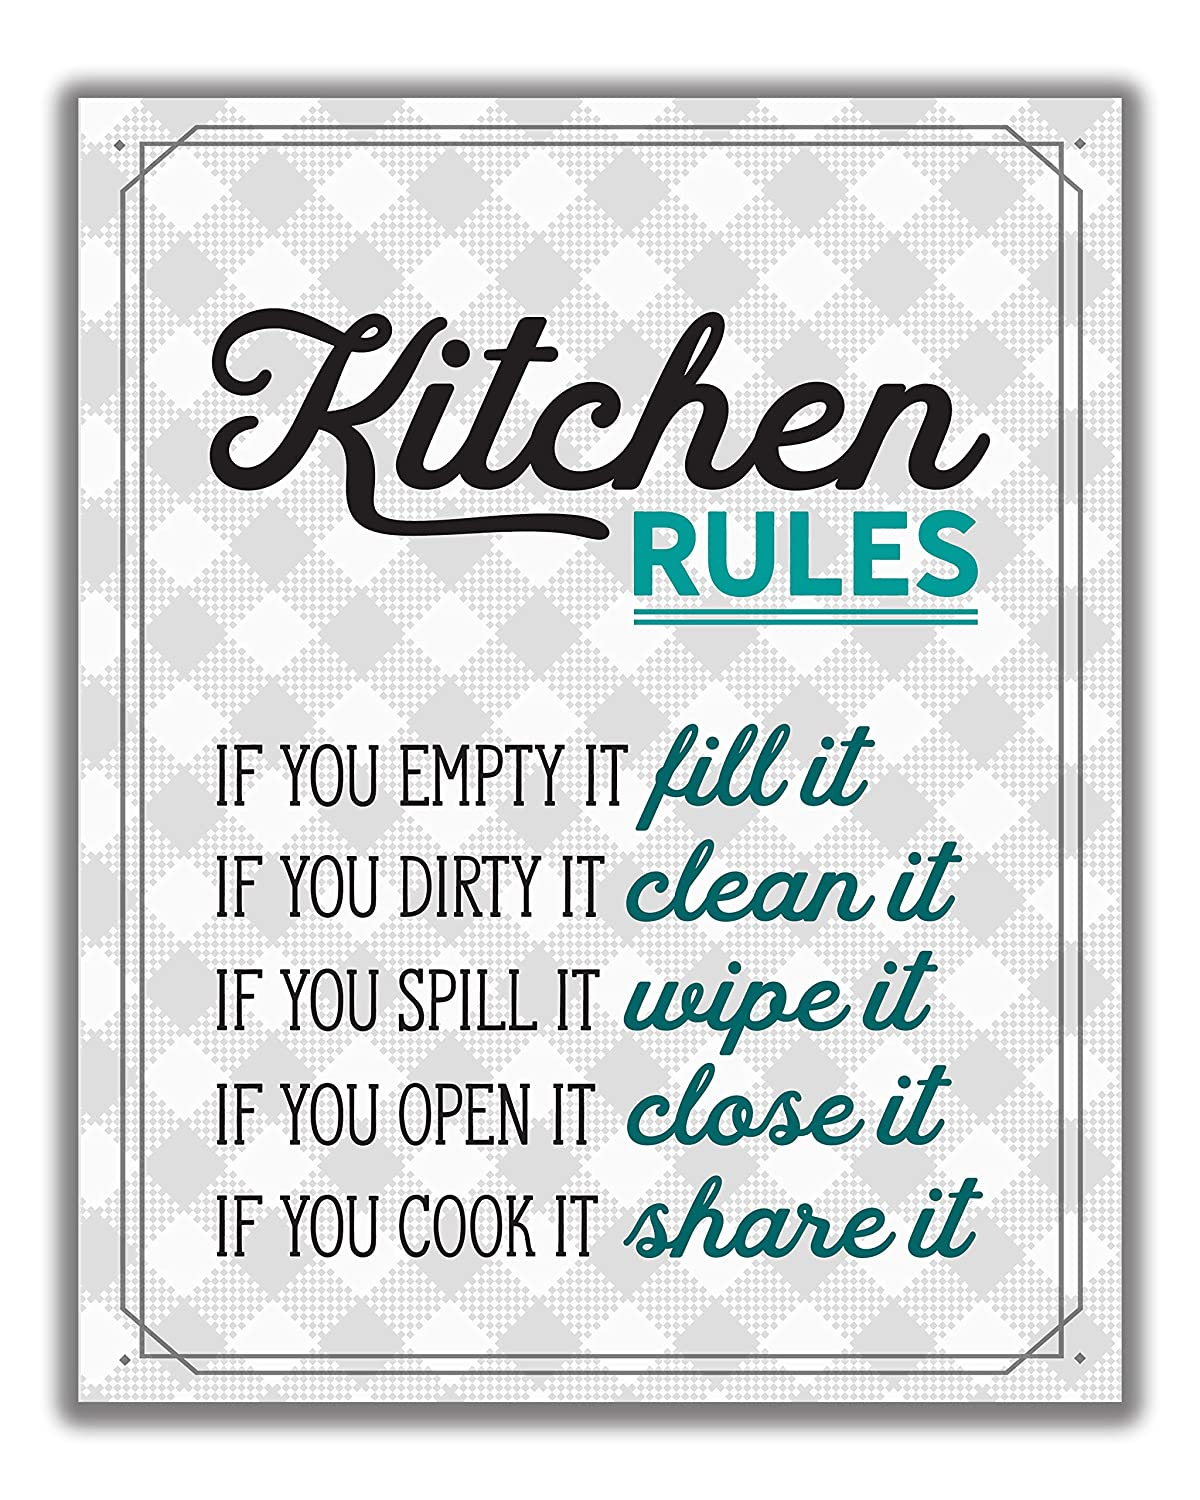 Teal Blue Retro Kitchen Rules Wall Art - 8x10 UNFRAMED Gray, Teal Blue & White Funny Kitchen Print Perfect for Modern Farmhouse, Rustic, Vintage, Cottage, Country Decor.